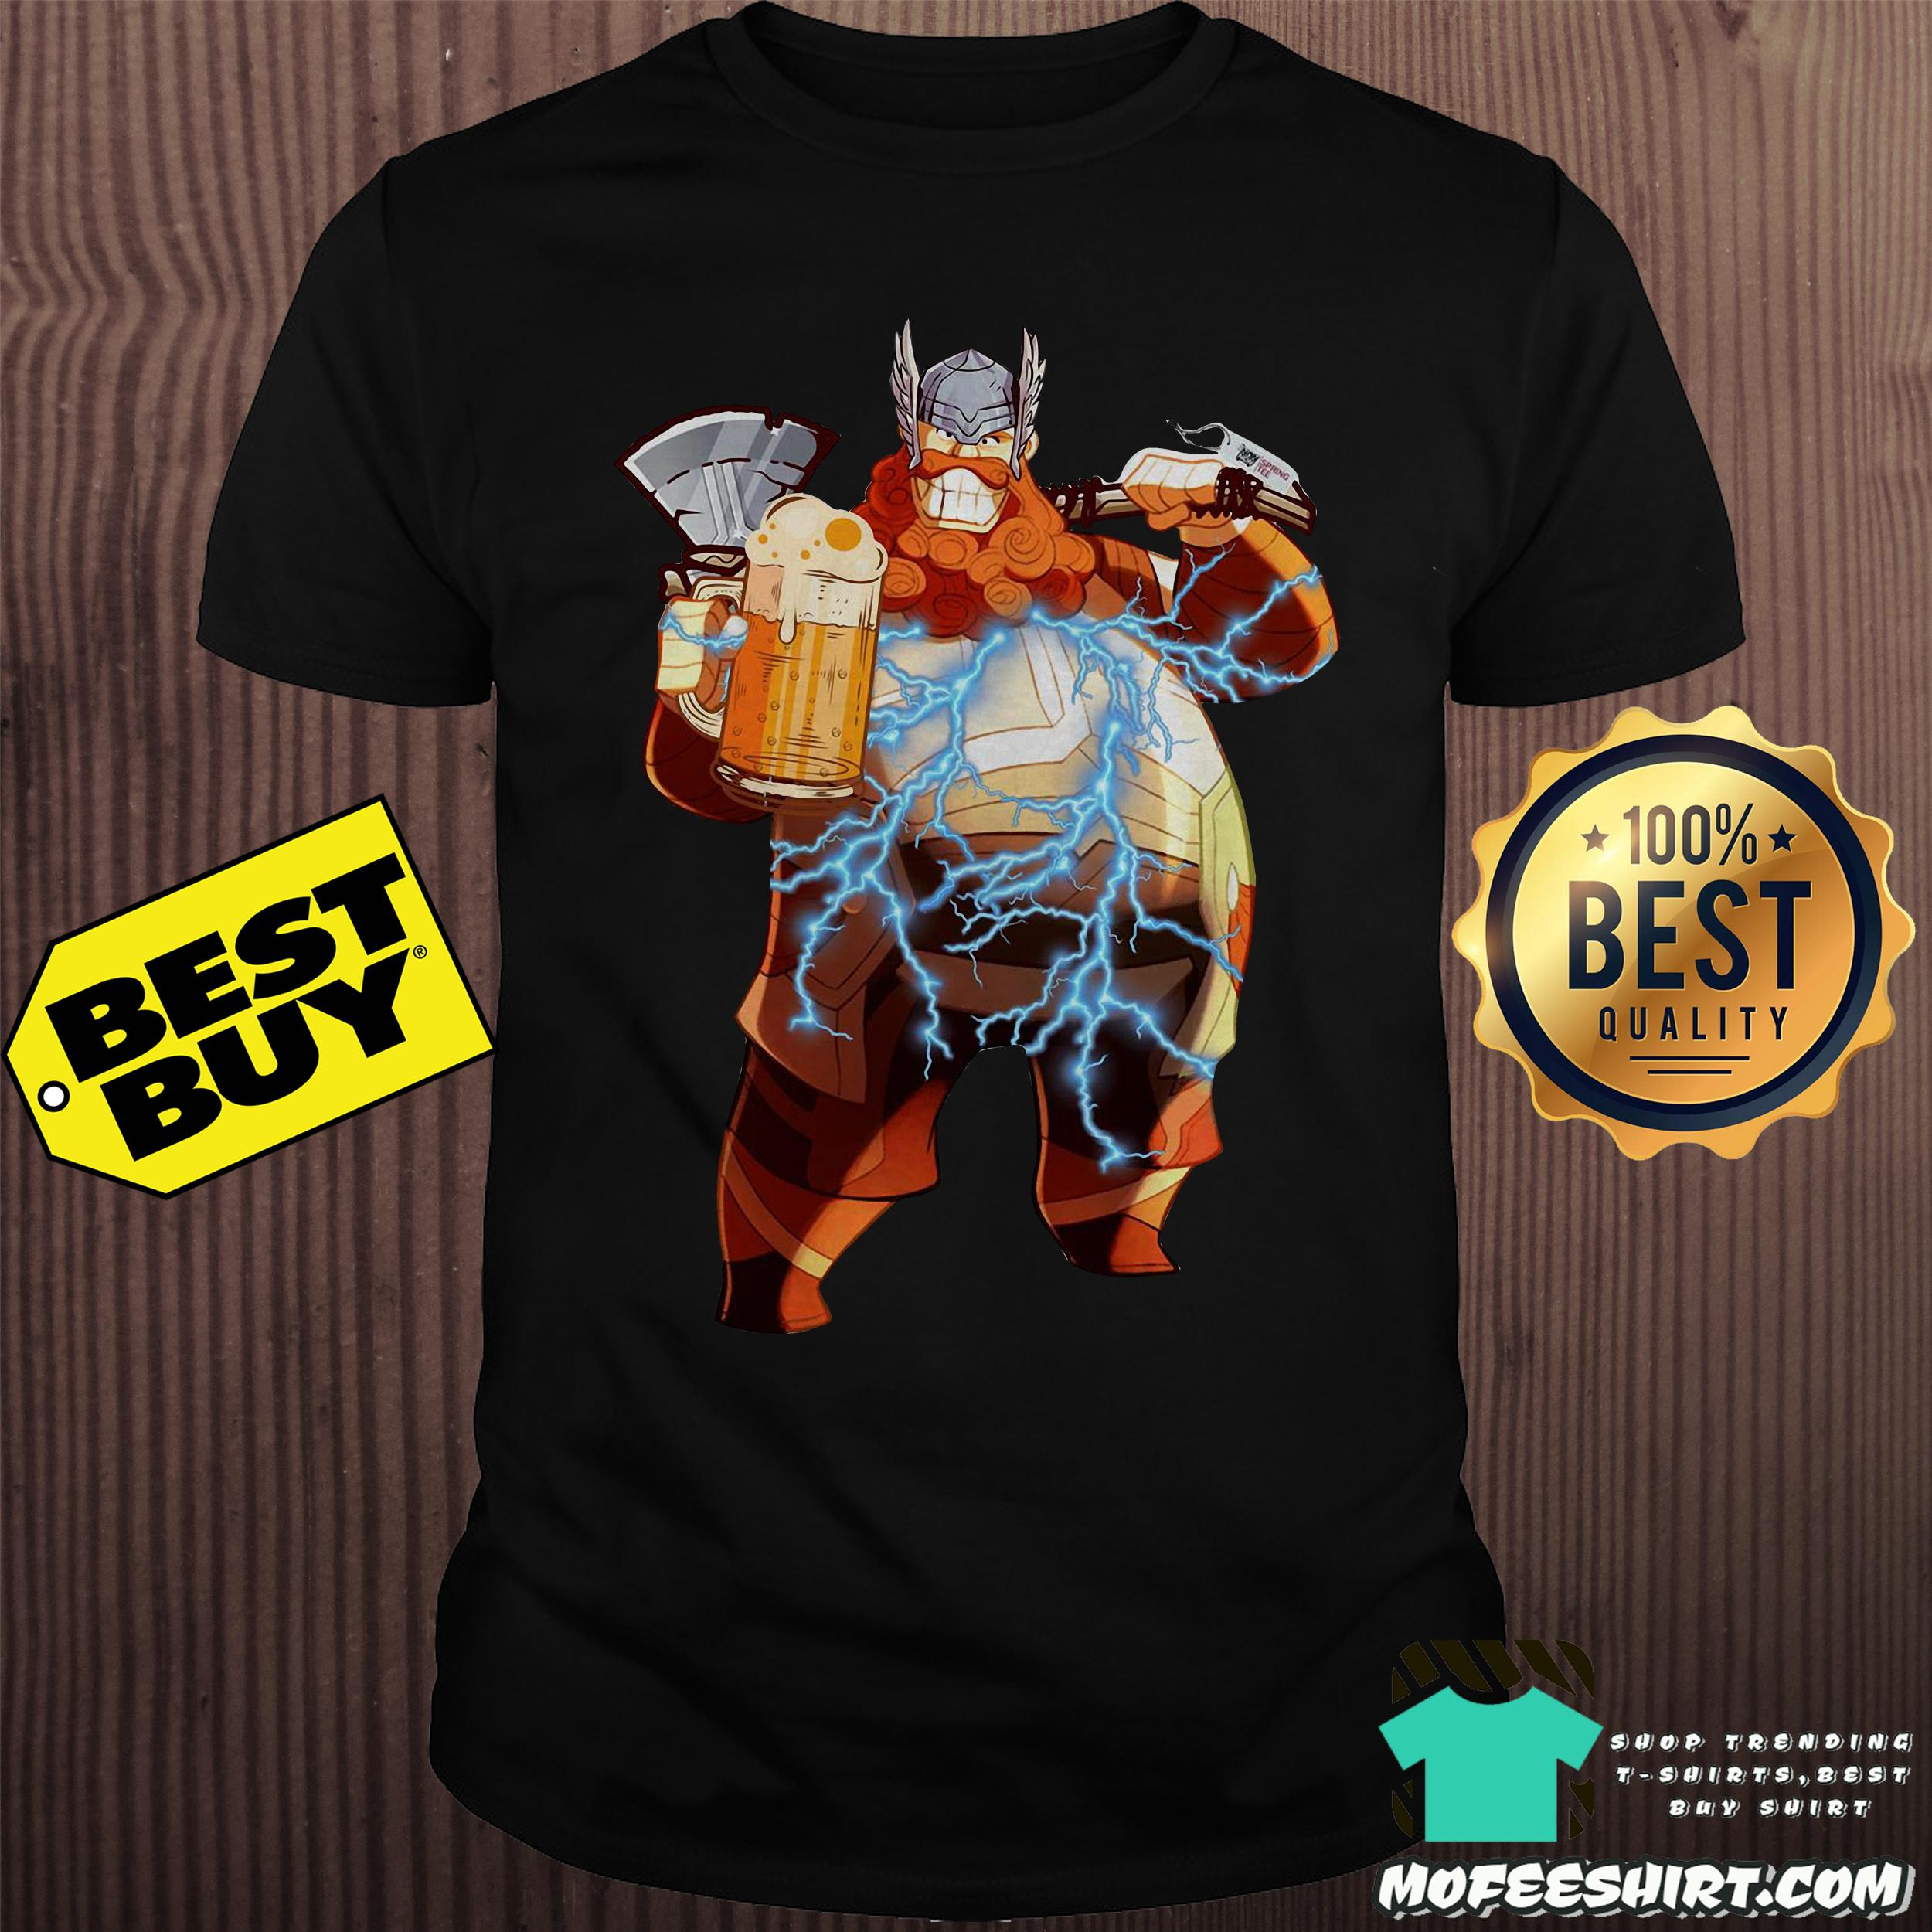 Avenger Endgame Fat Thor And Beer Shirt